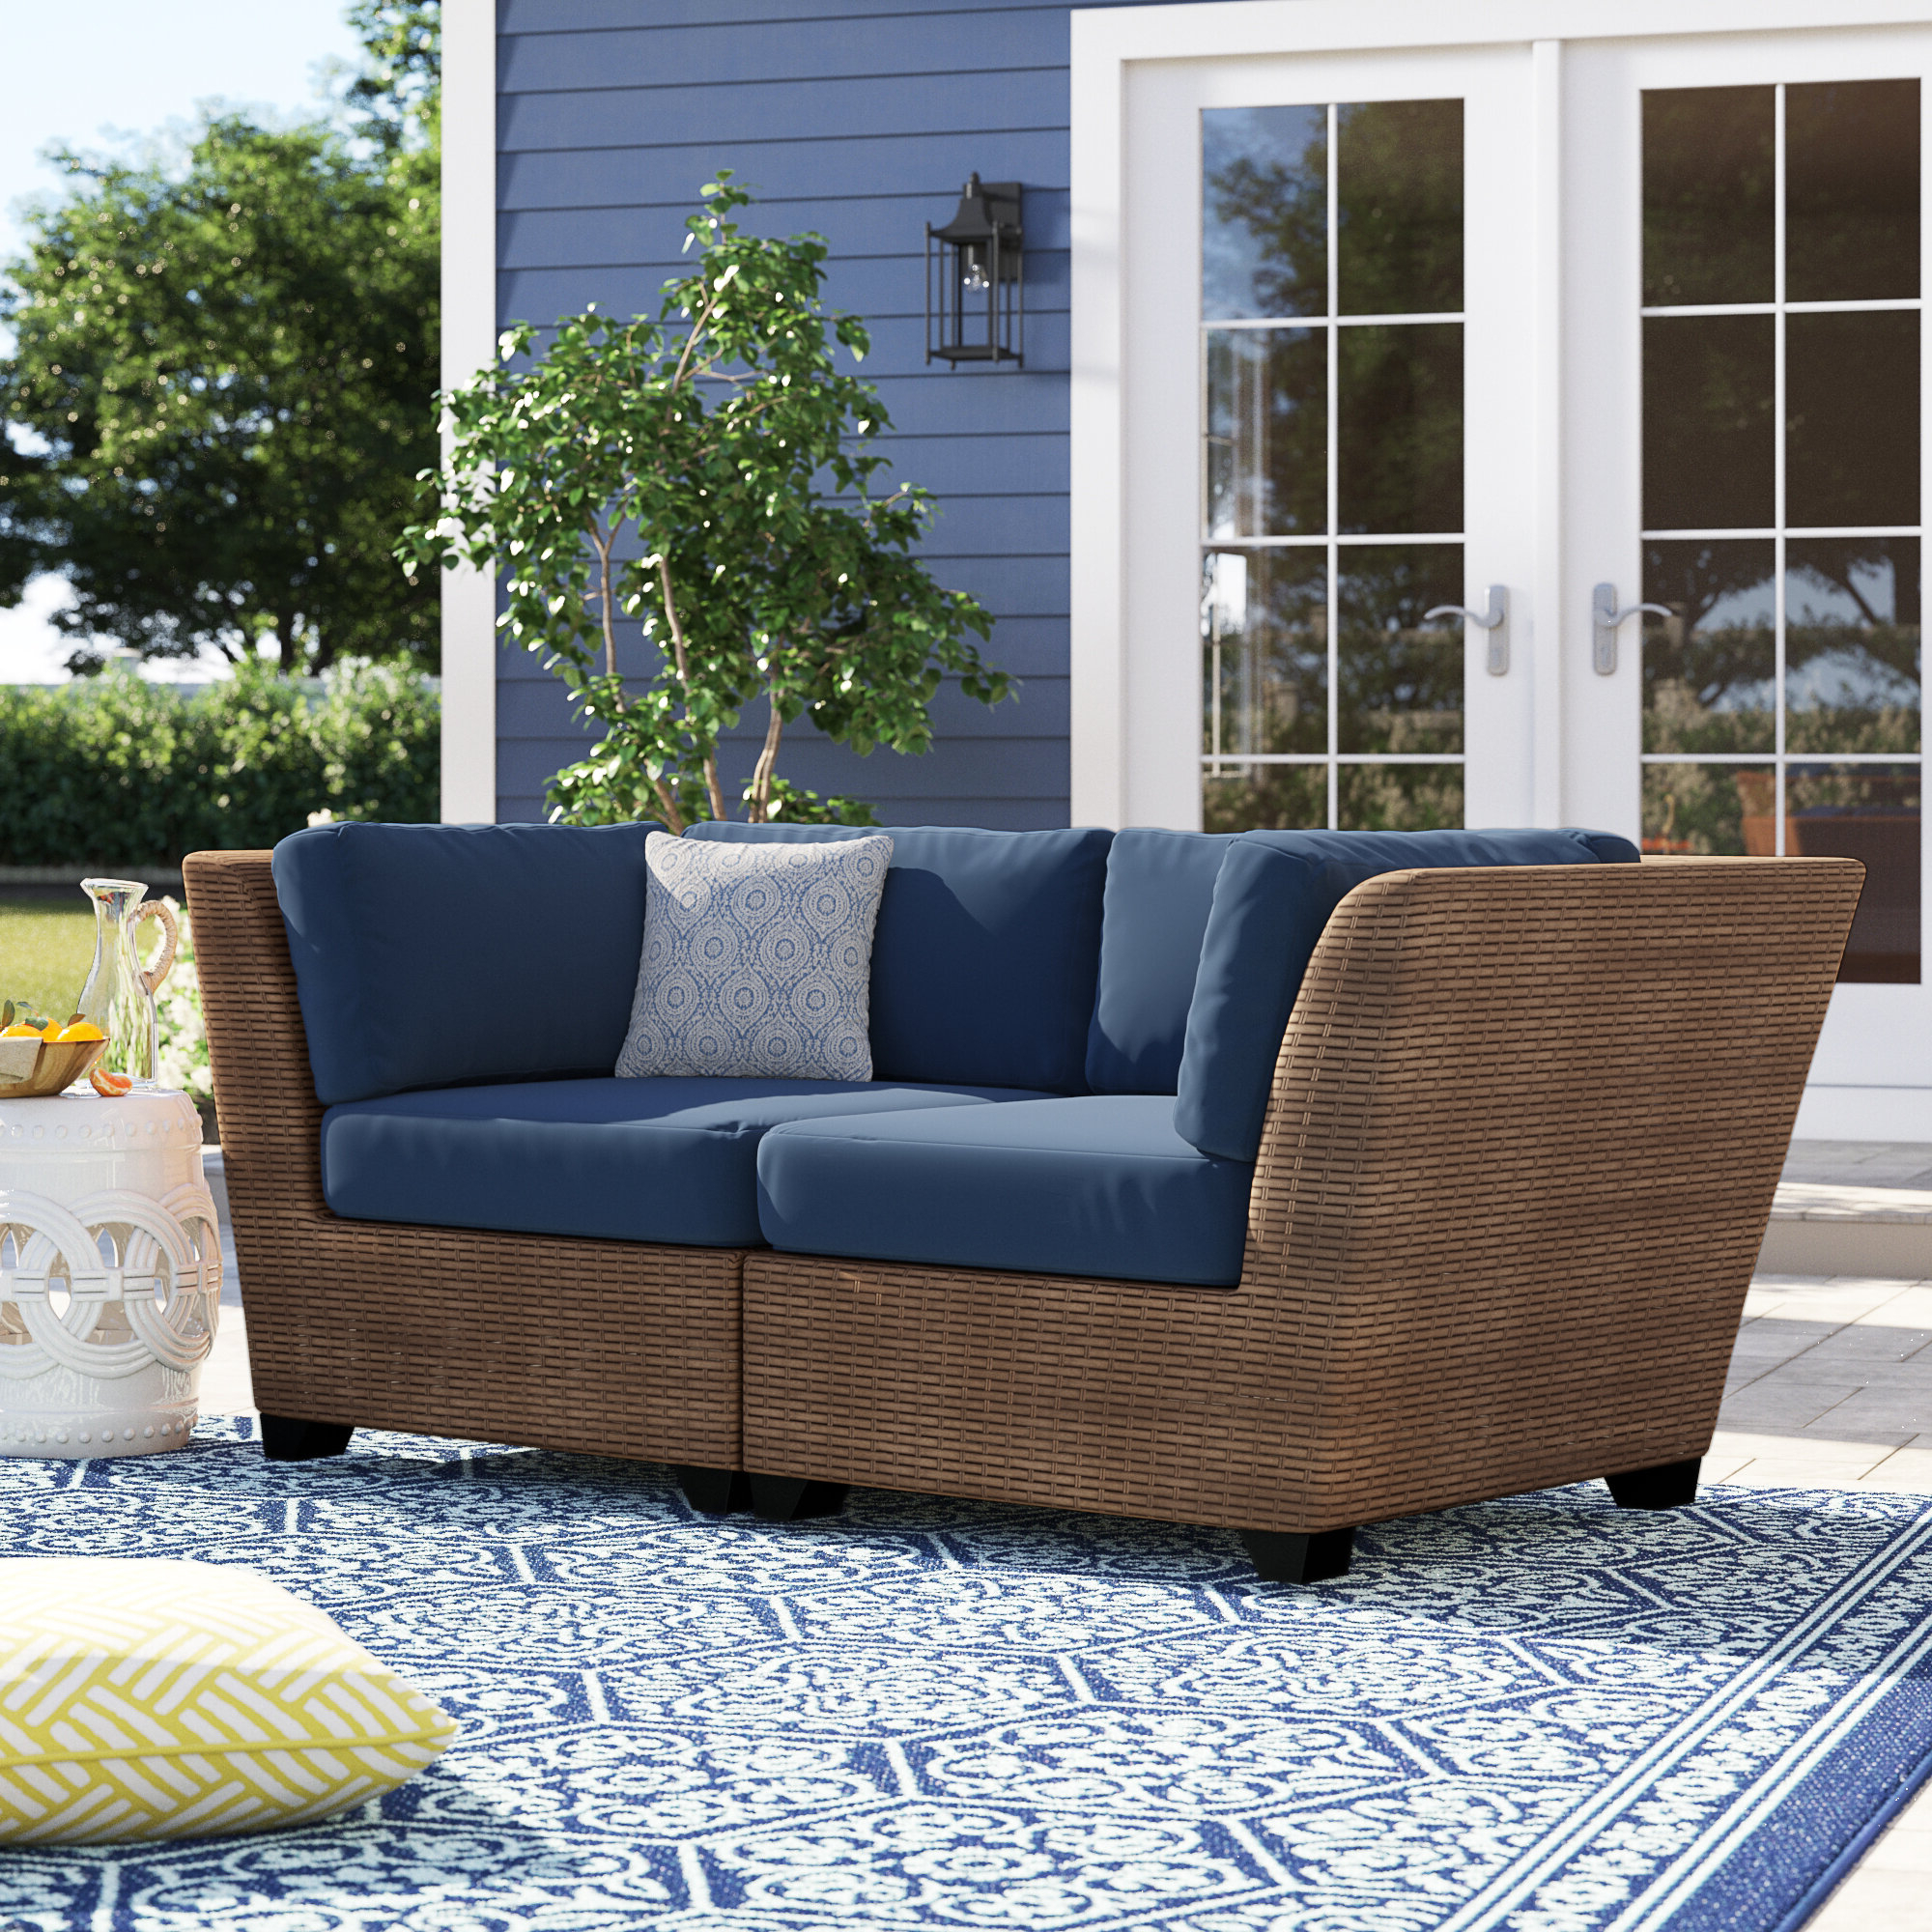 Waterbury Corner Sofa With Cushions Pertaining To Well Liked Avadi Outdoor Sofas & Ottomans 3 Piece Set (View 24 of 25)